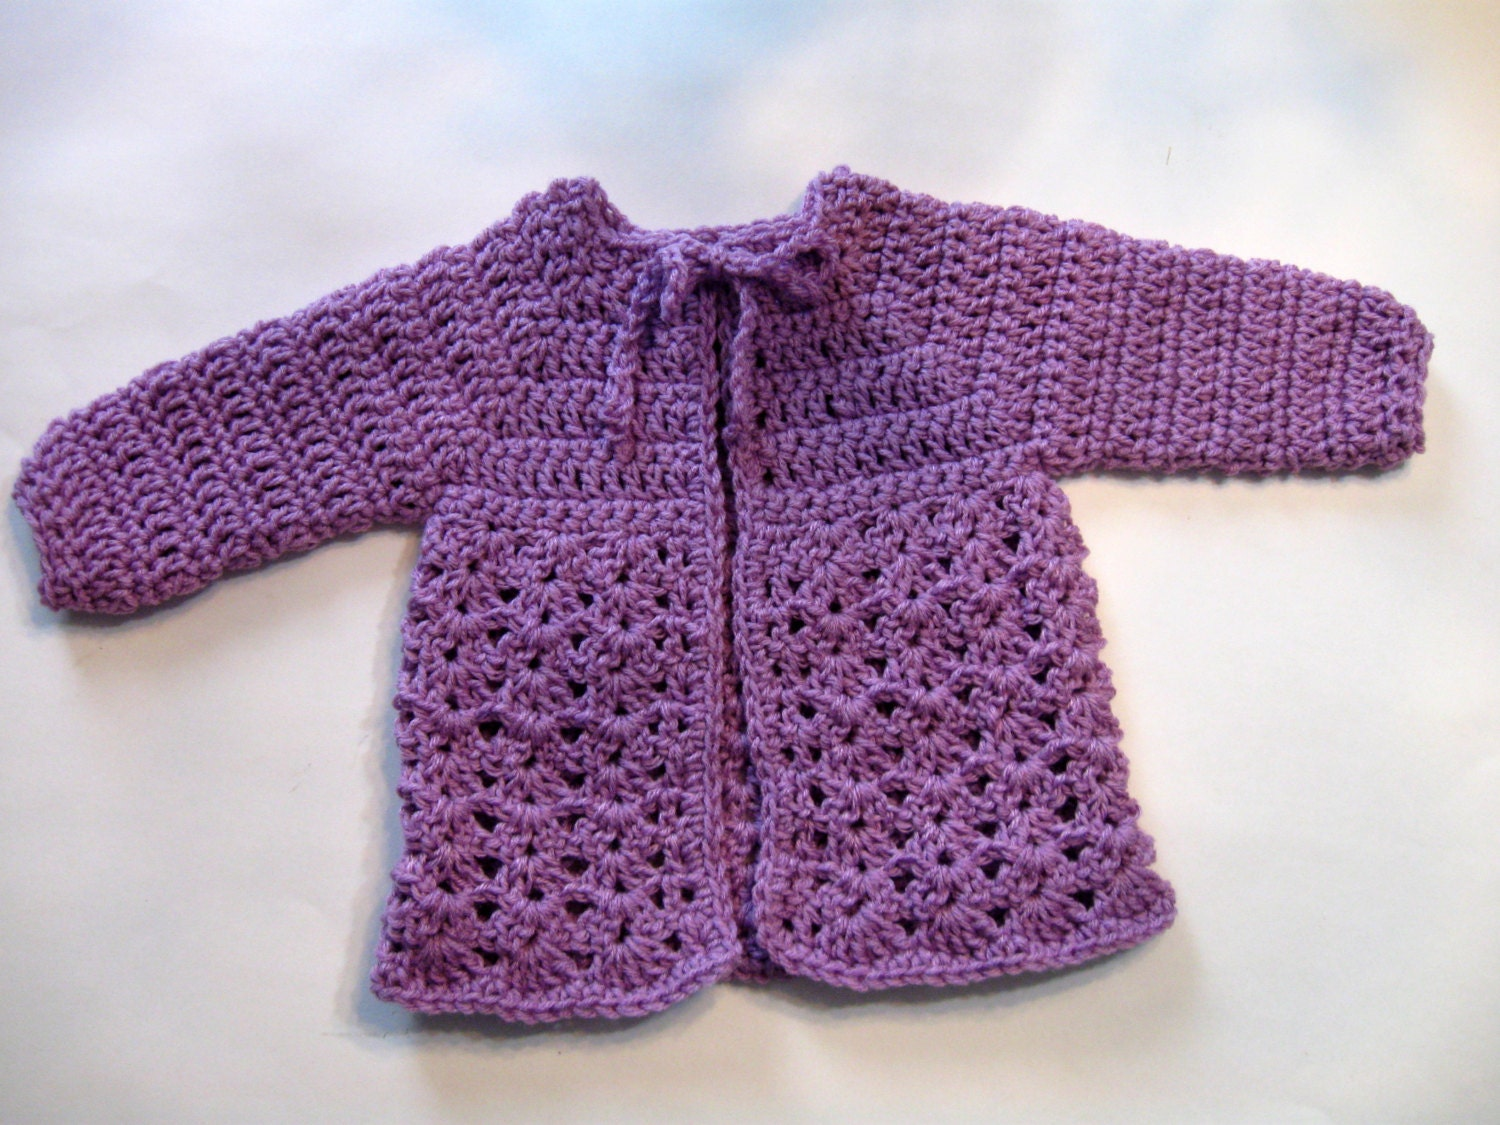 Crochet Pattern Central Baby Cardigans : Instant Download Crochet Baby Sweater Pattern Beginner